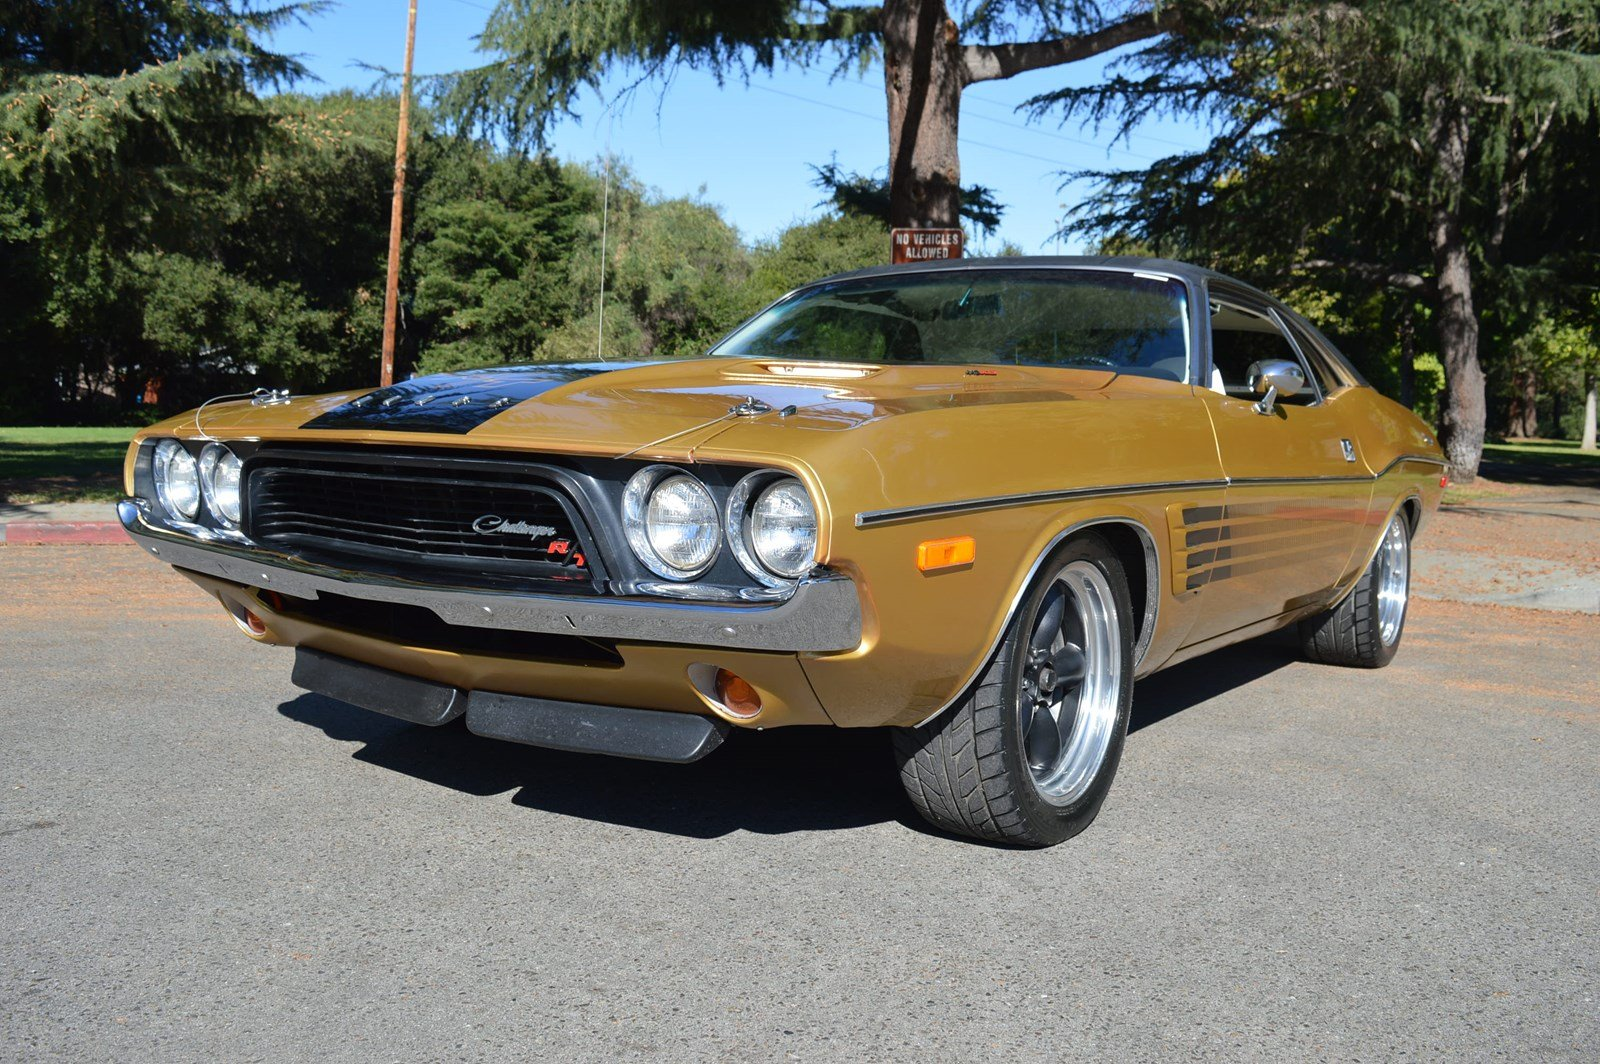 pre owned 1972 dodge challenger in san jose am4043 stevens creek